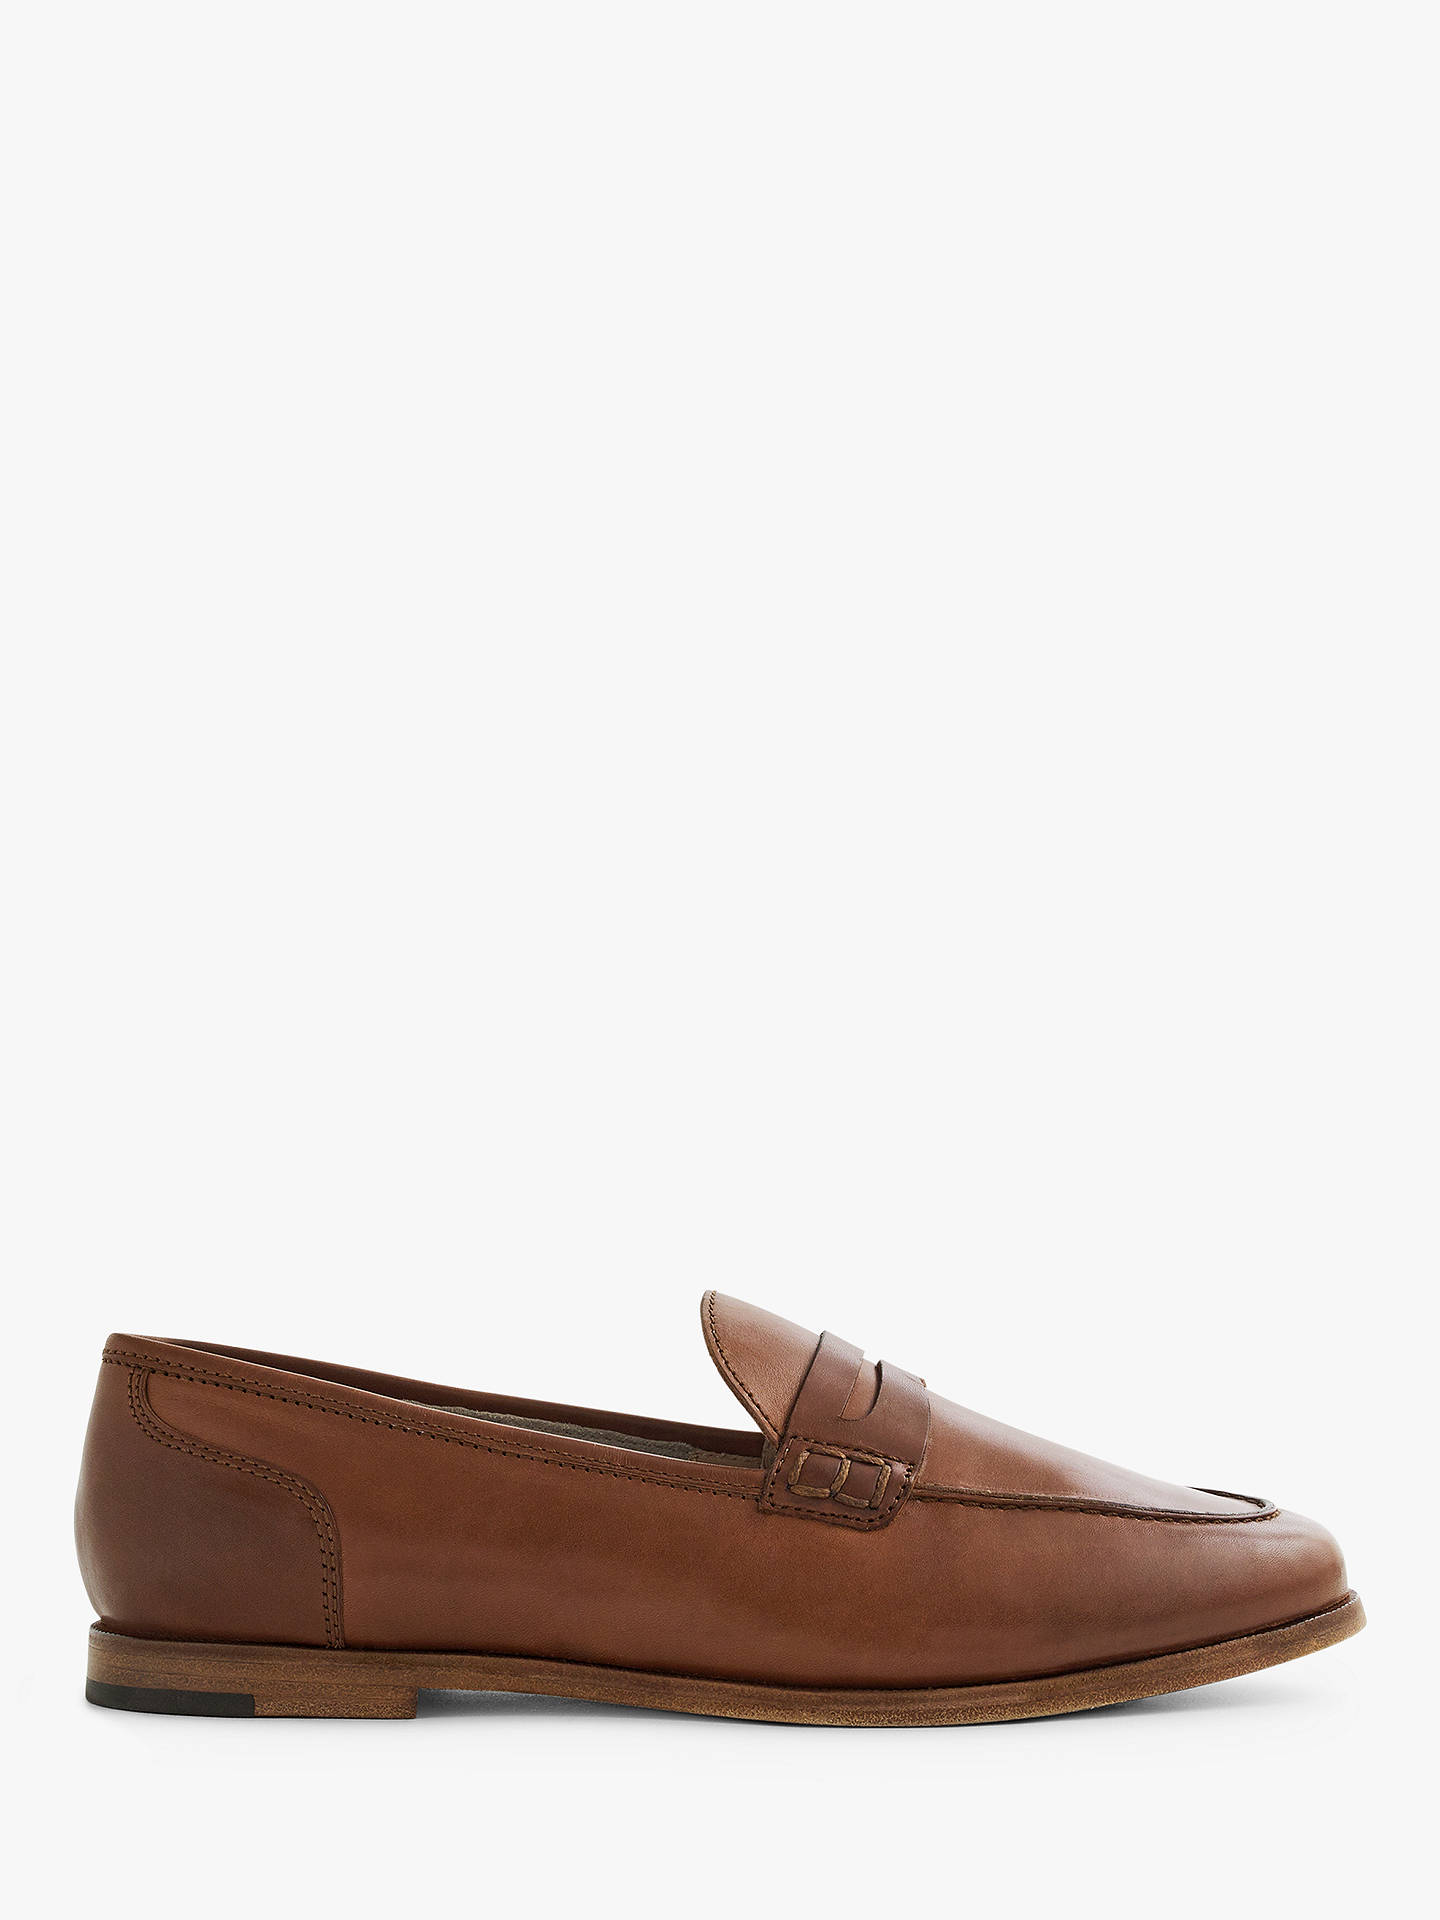 2a078d1d32e J.Crew Ryan Penny Loafer at John Lewis   Partners